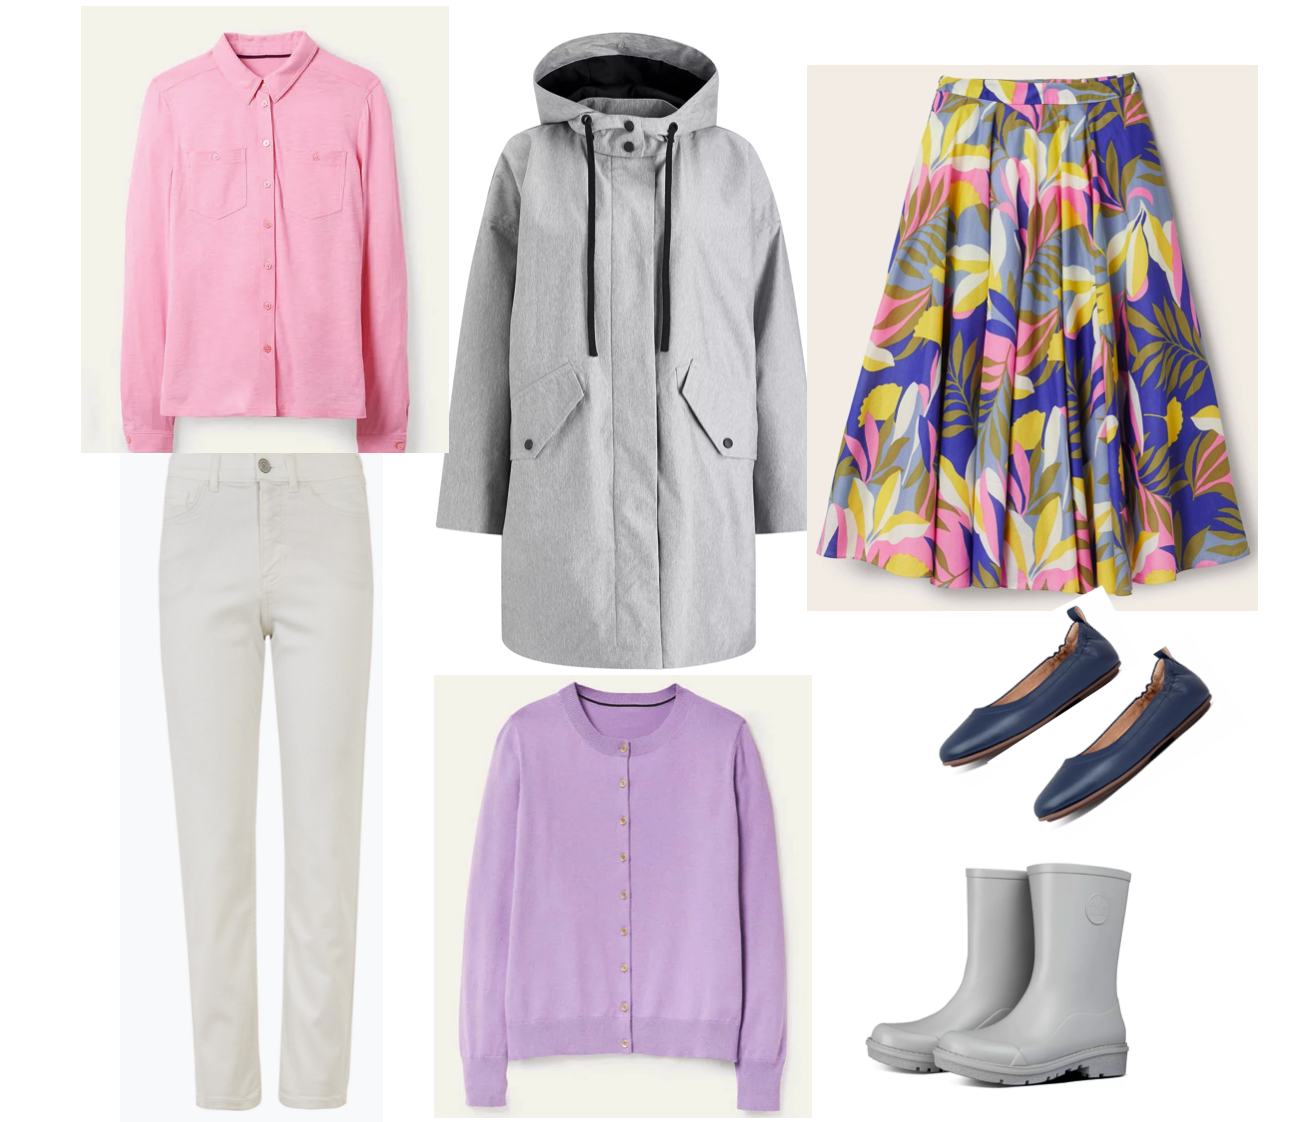 How to create a capsule wardrobe for a weekend away